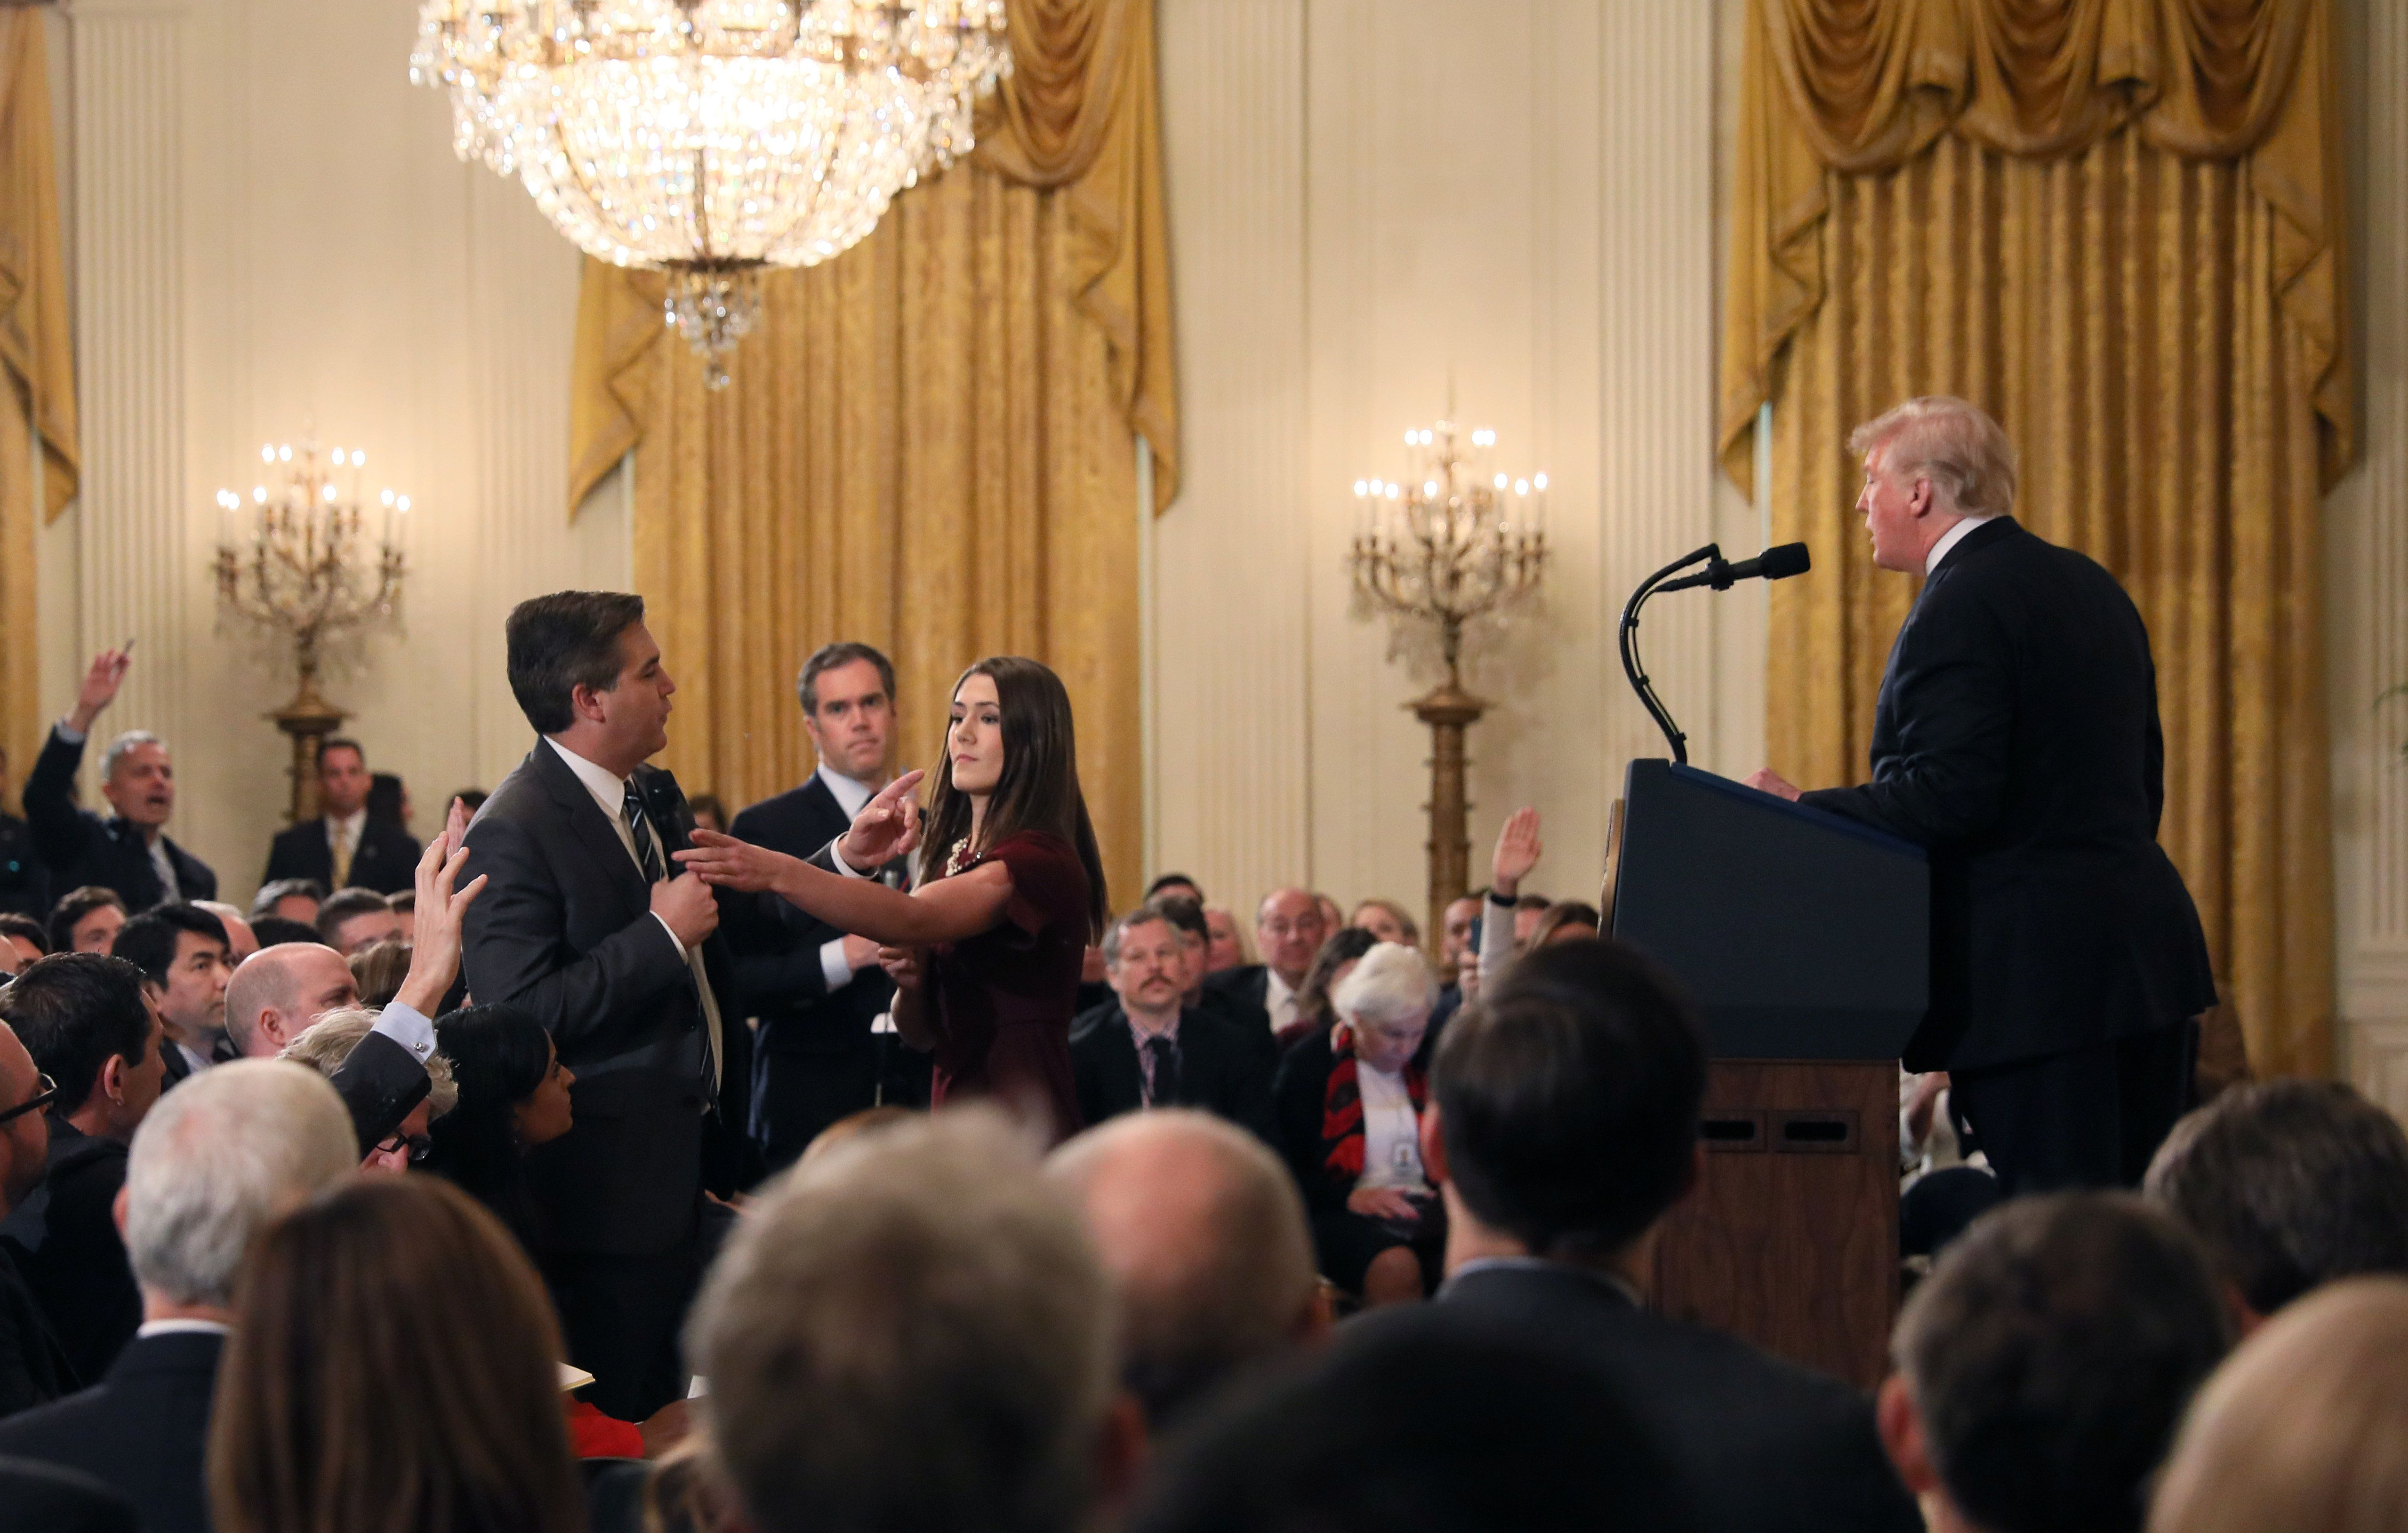 CNN's Jim Acosta questions U.S. President Donald Trump during his news conference following Tuesday's midterm U.S. congressional elections at the White House in Washington, U.S., November 7, 2018. REUTERS/Jonathan Ernst